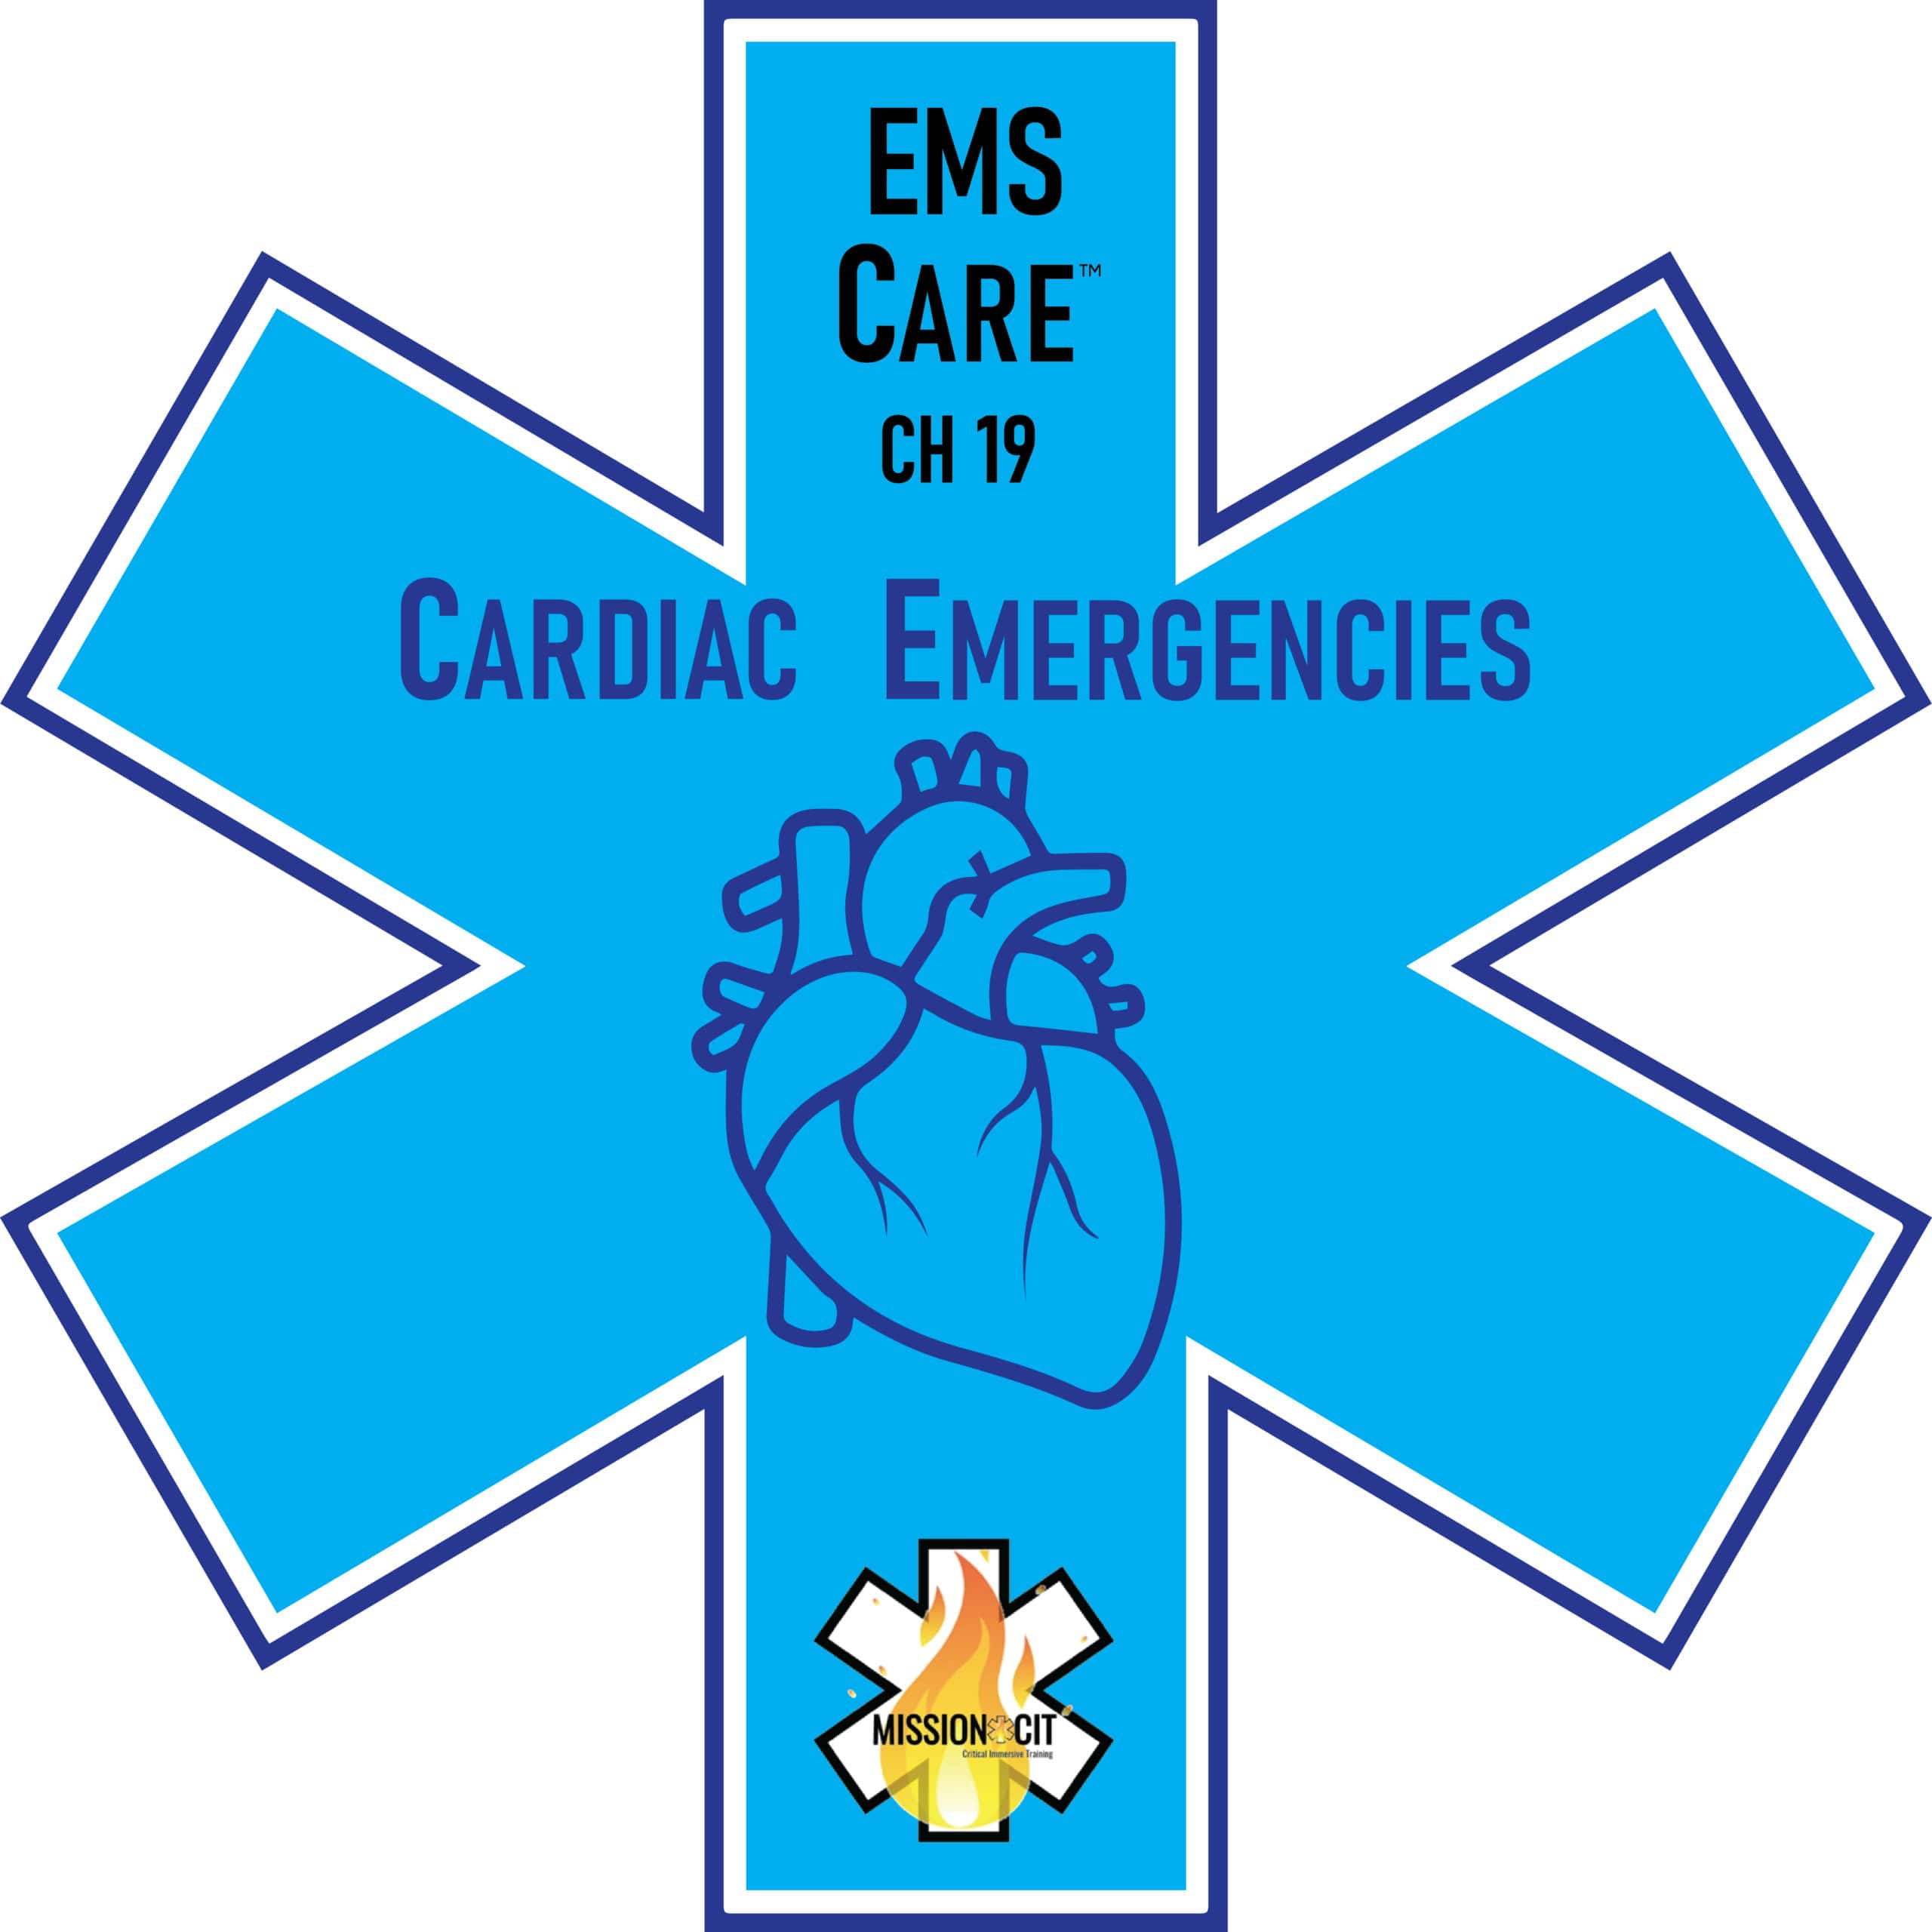 EMS Care Chapter 19 | Cardiac Emergencies | Pediatric CPR | Return of Spontaneous Circulation | Chain of Survival | ROSC